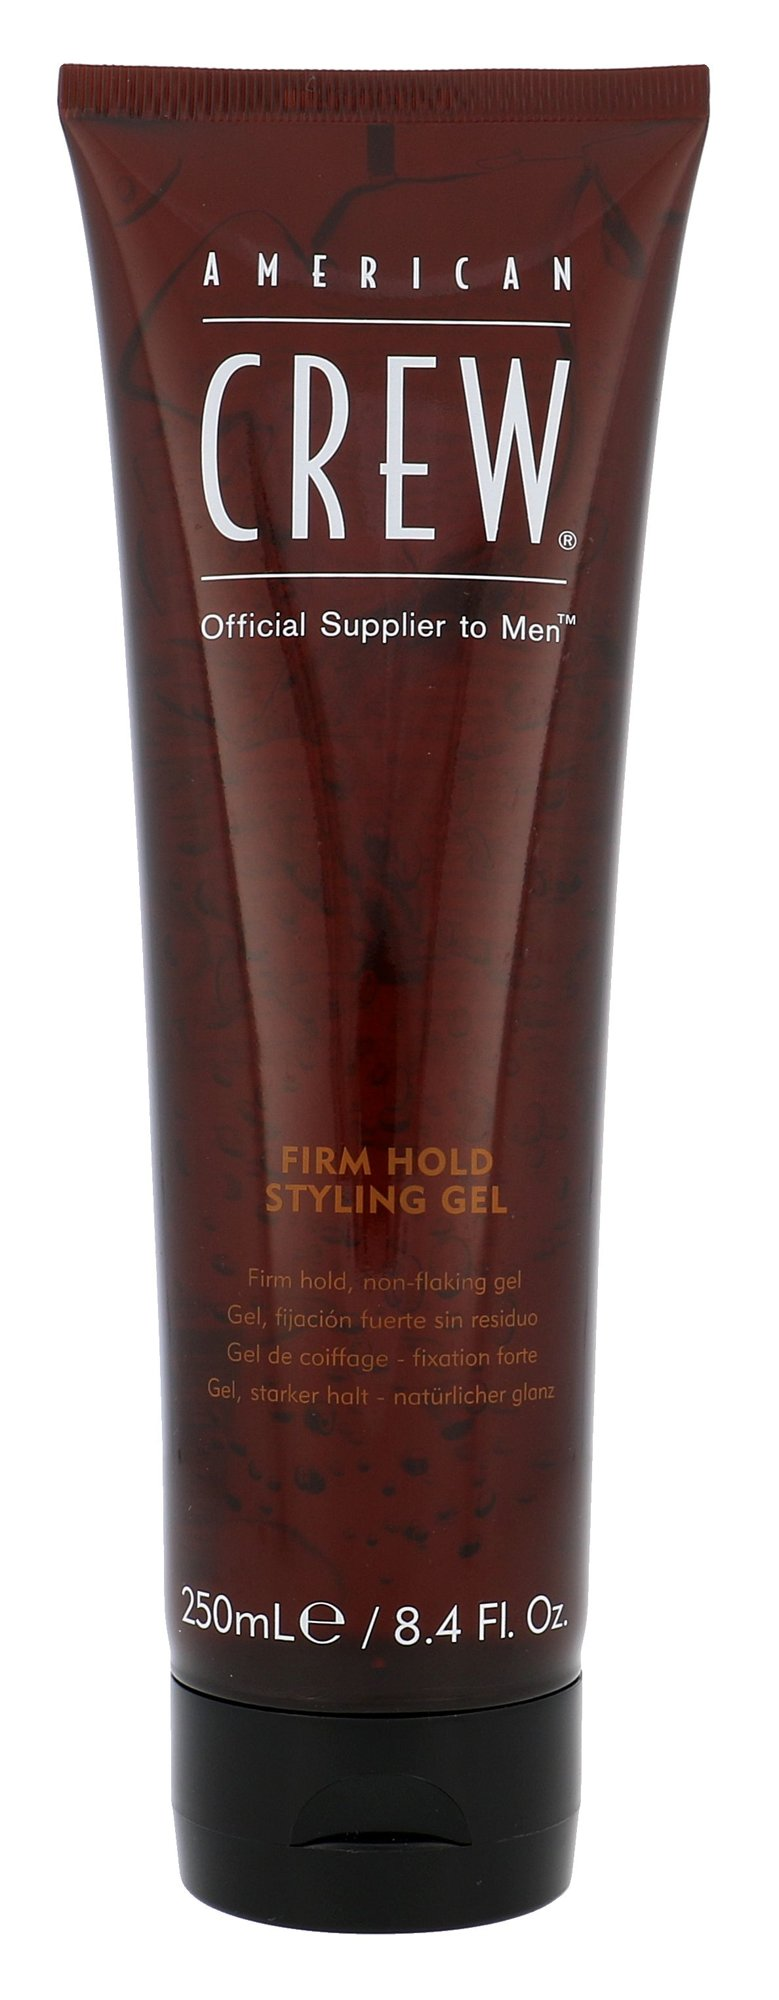 American Crew Style Cosmetic 250ml  Firm Hold Styling Gel